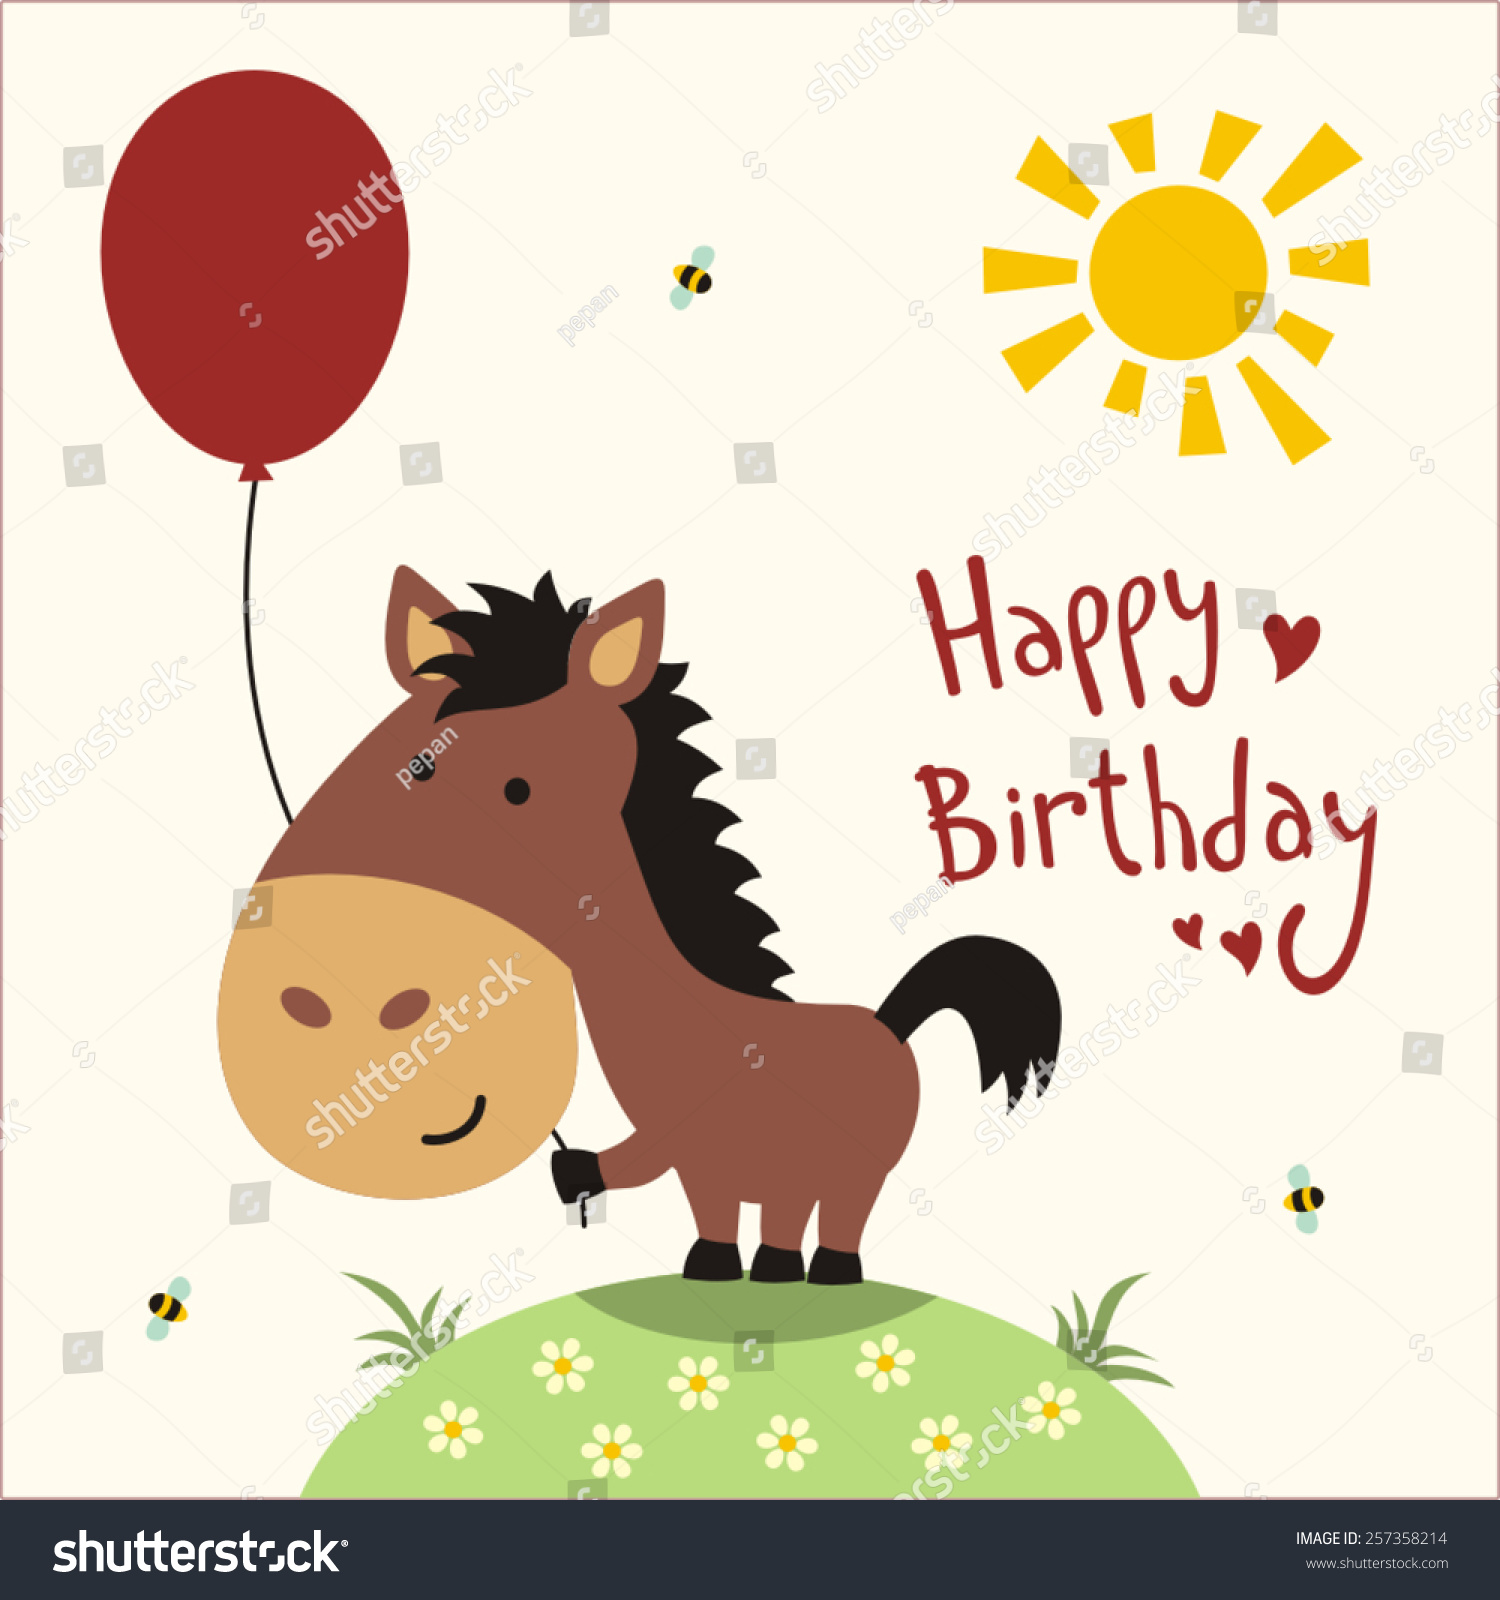 Happy Birthday Funny Little Horse With Balloon